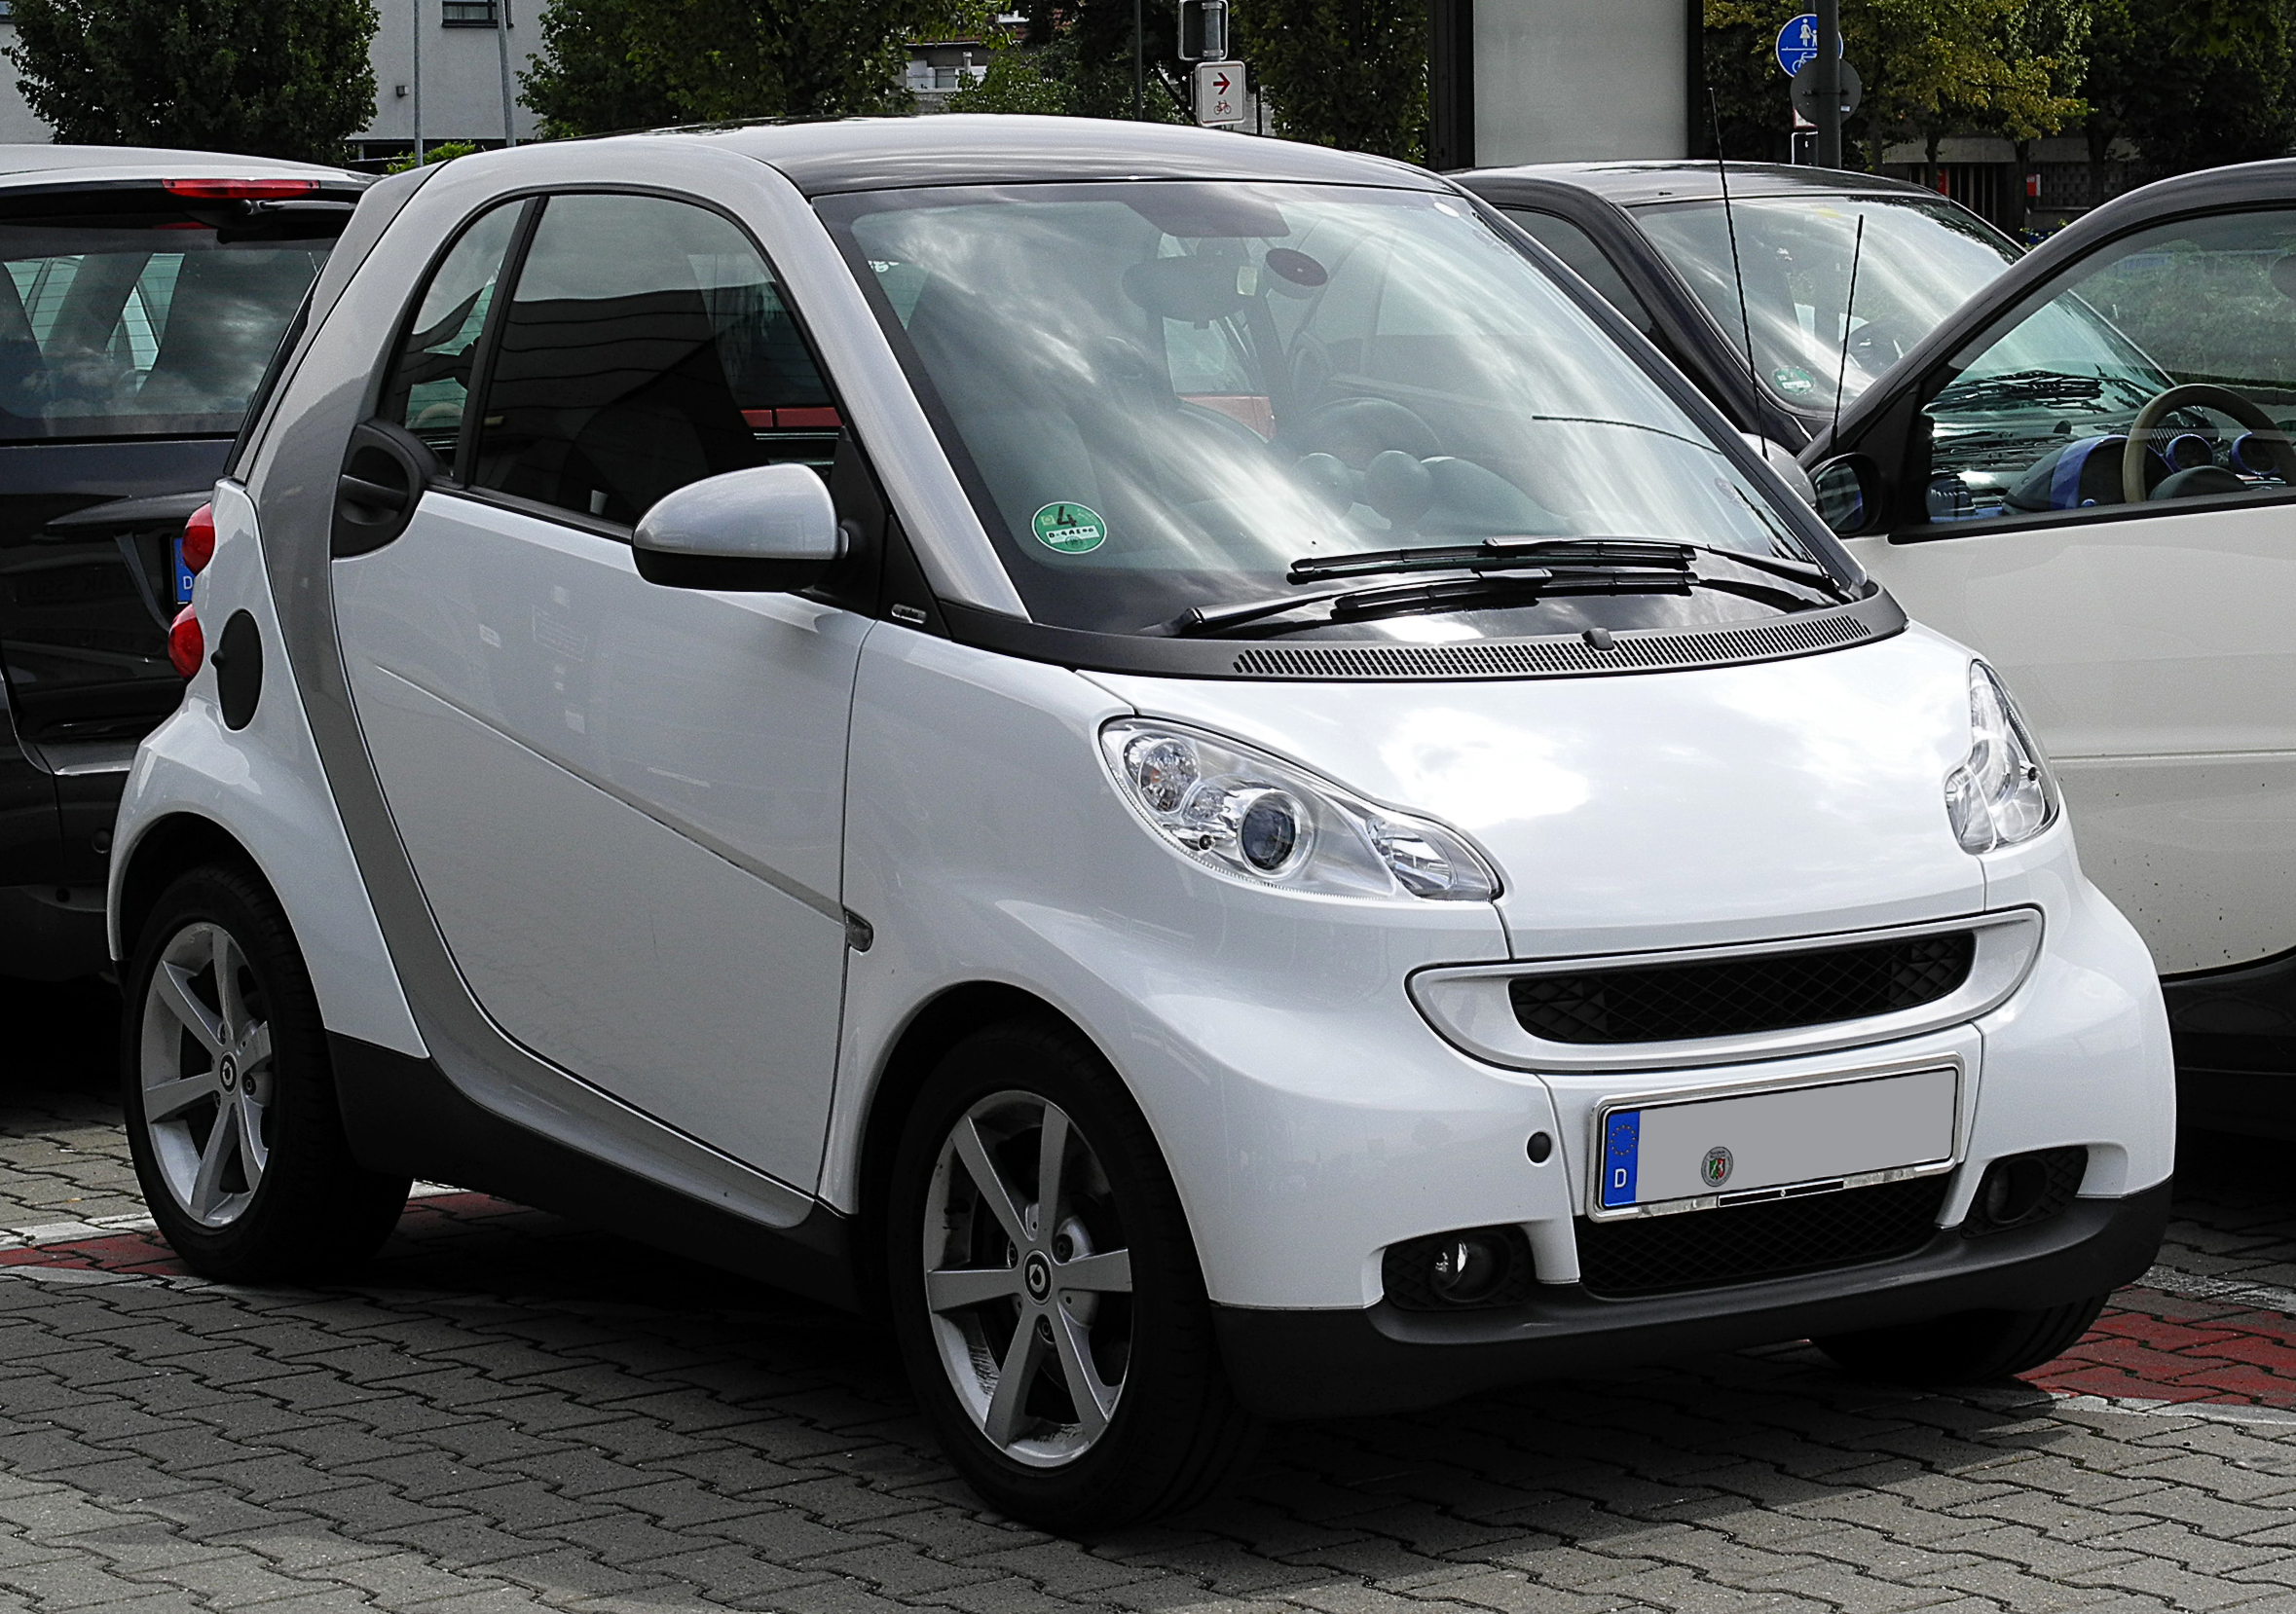 Smart 451 Zubehör Smart Fortwo Wikiwand